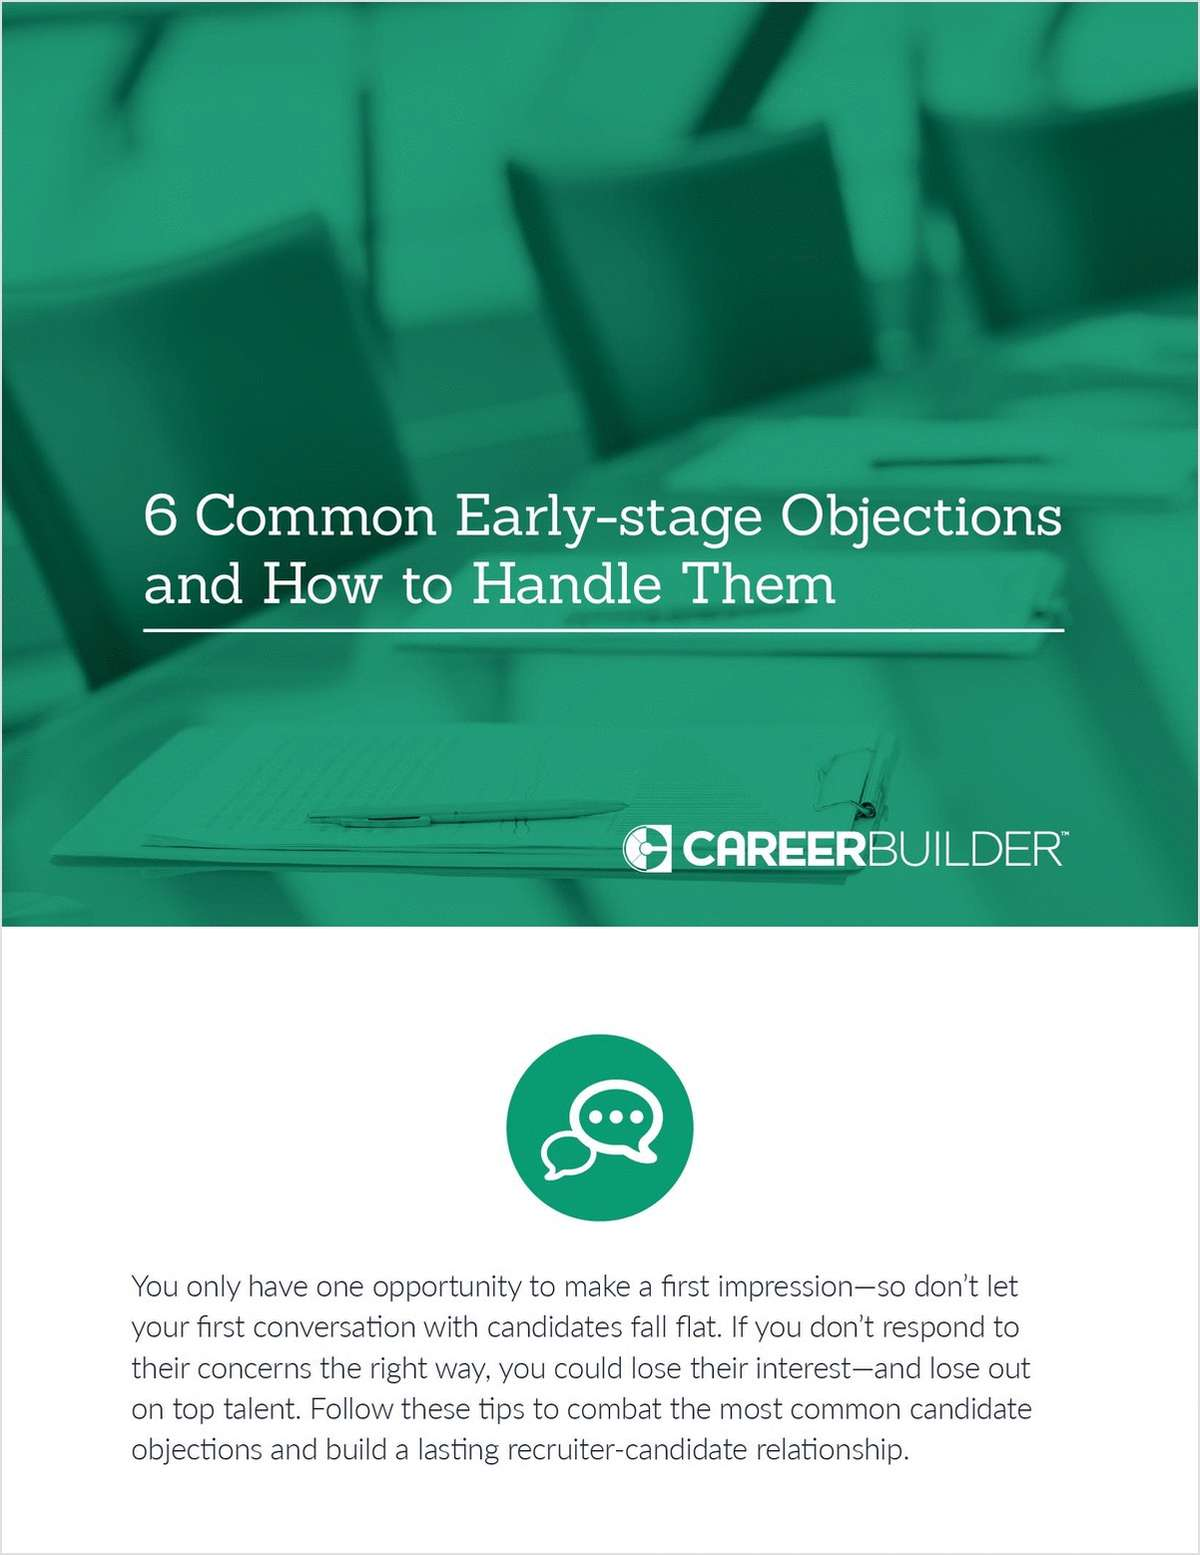 6 Common Early-stage Hiring Objections and How to Handle Them